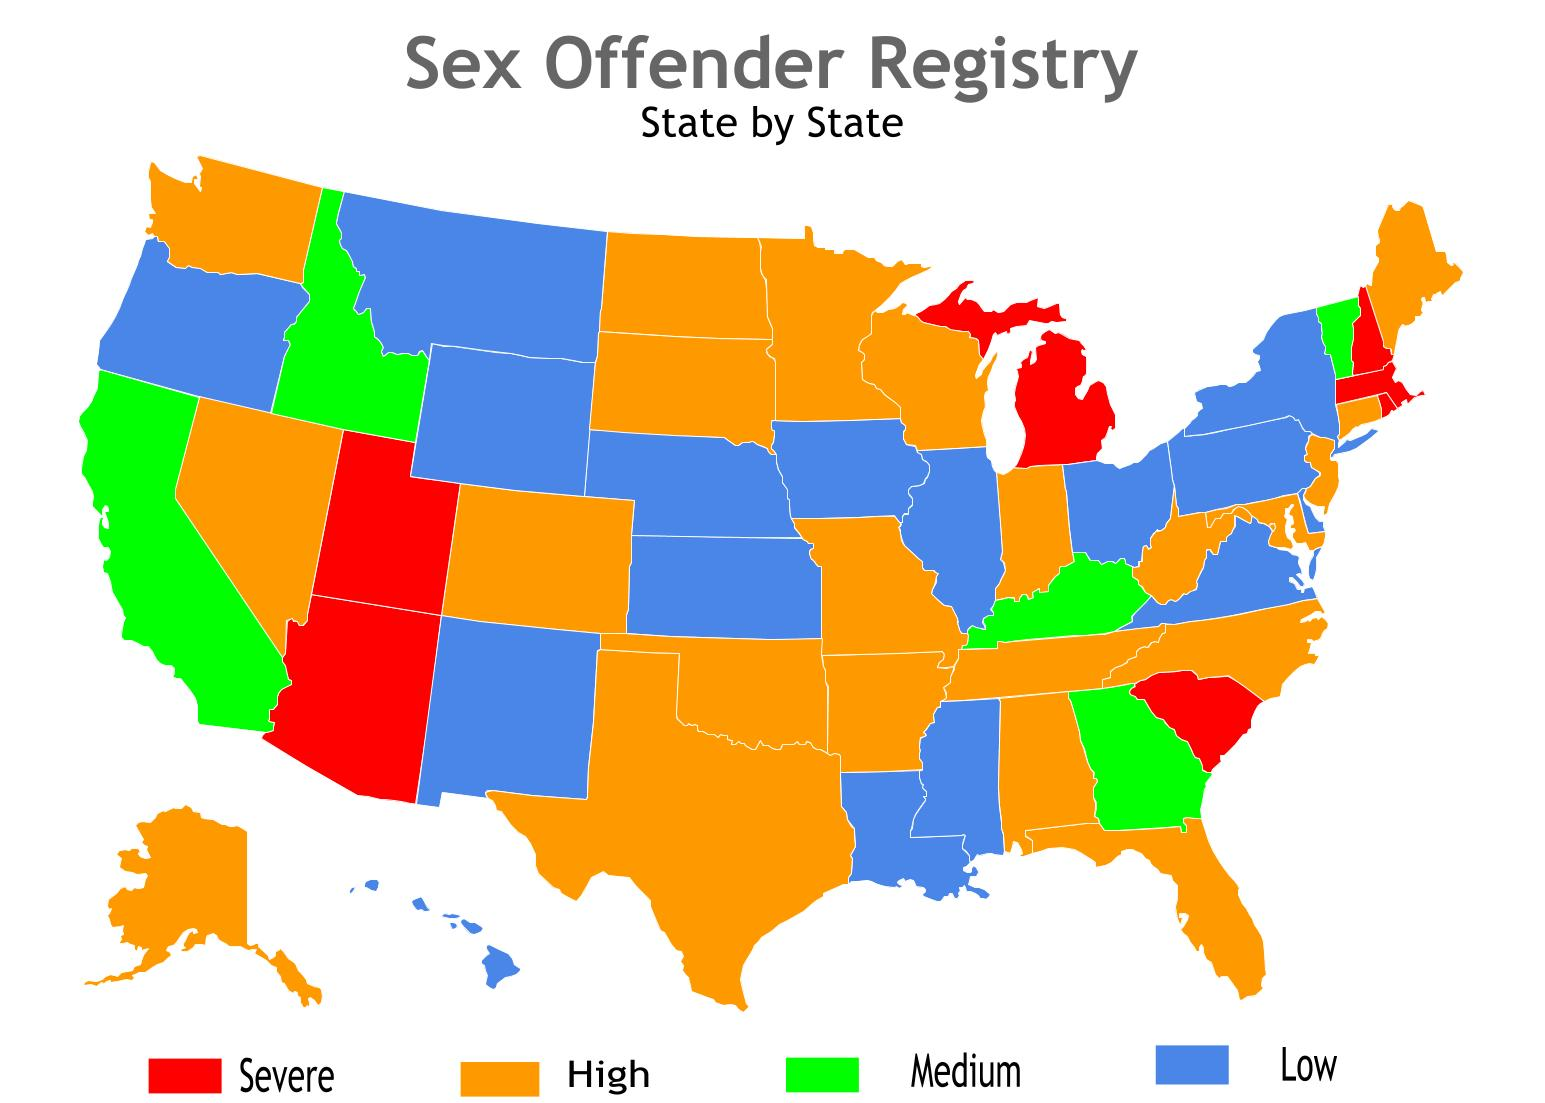 Length of registration for sex offenders